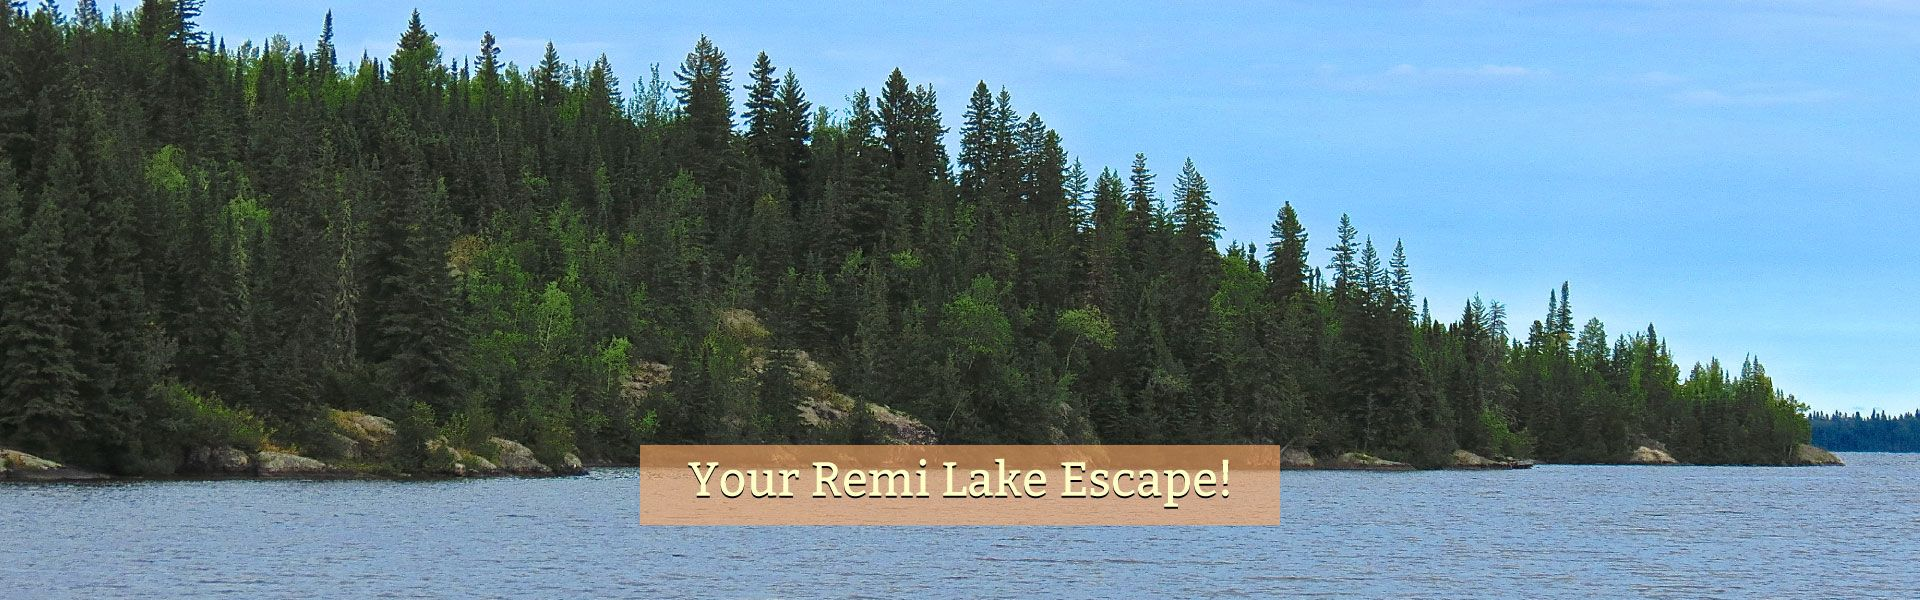 Your Remi Lake Escape! | Remi Lake